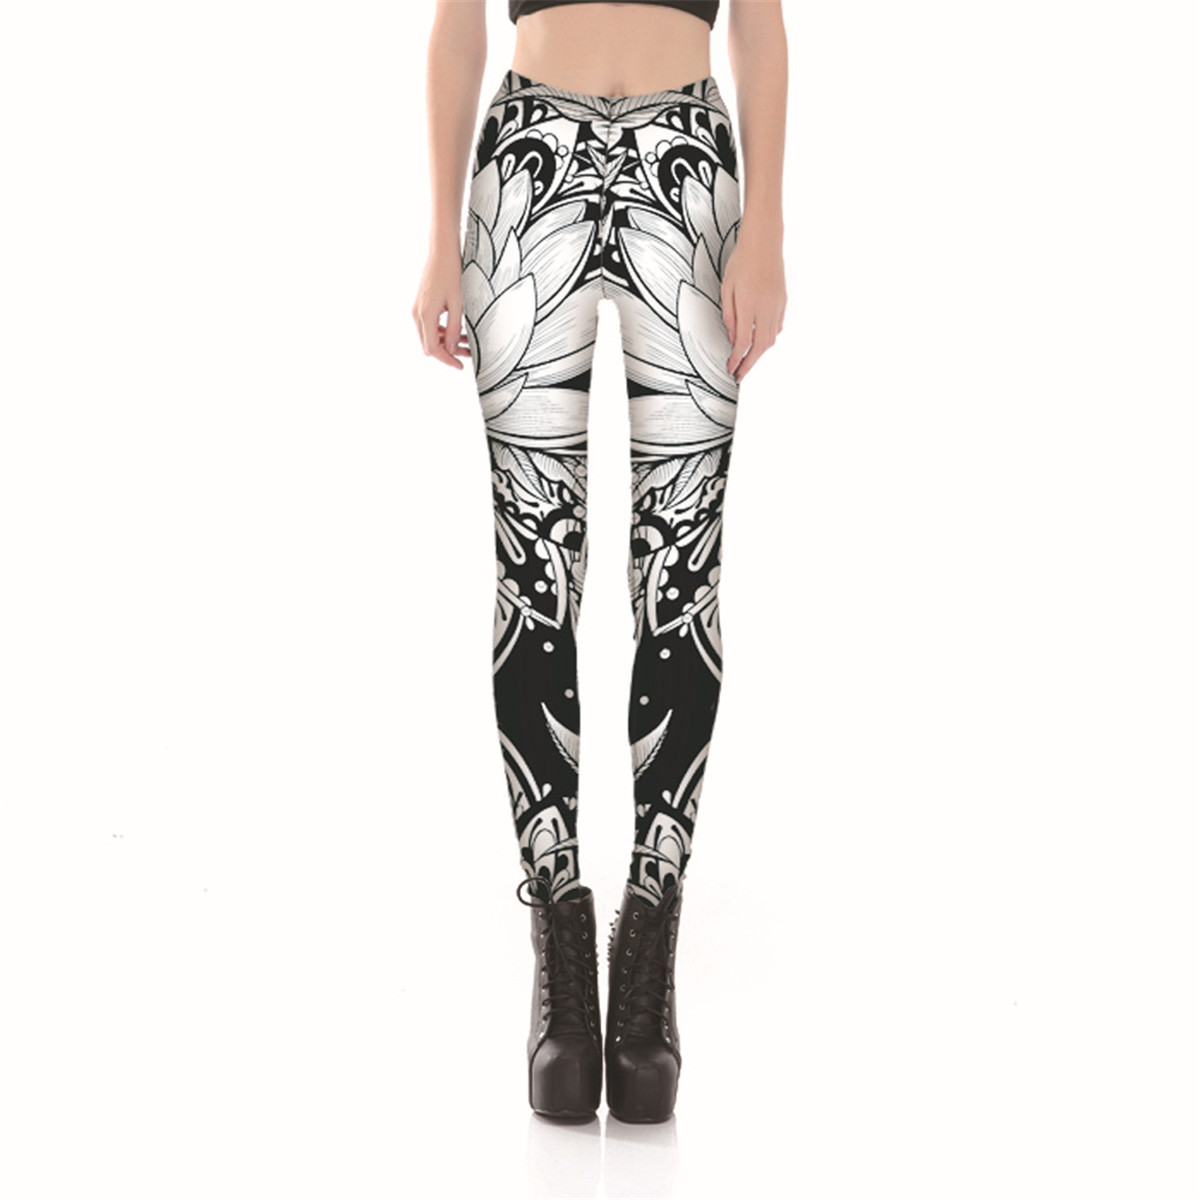 544ac70d576 2019 Floral Paisley Abstract Print Leggings Soft Plus Size White ...